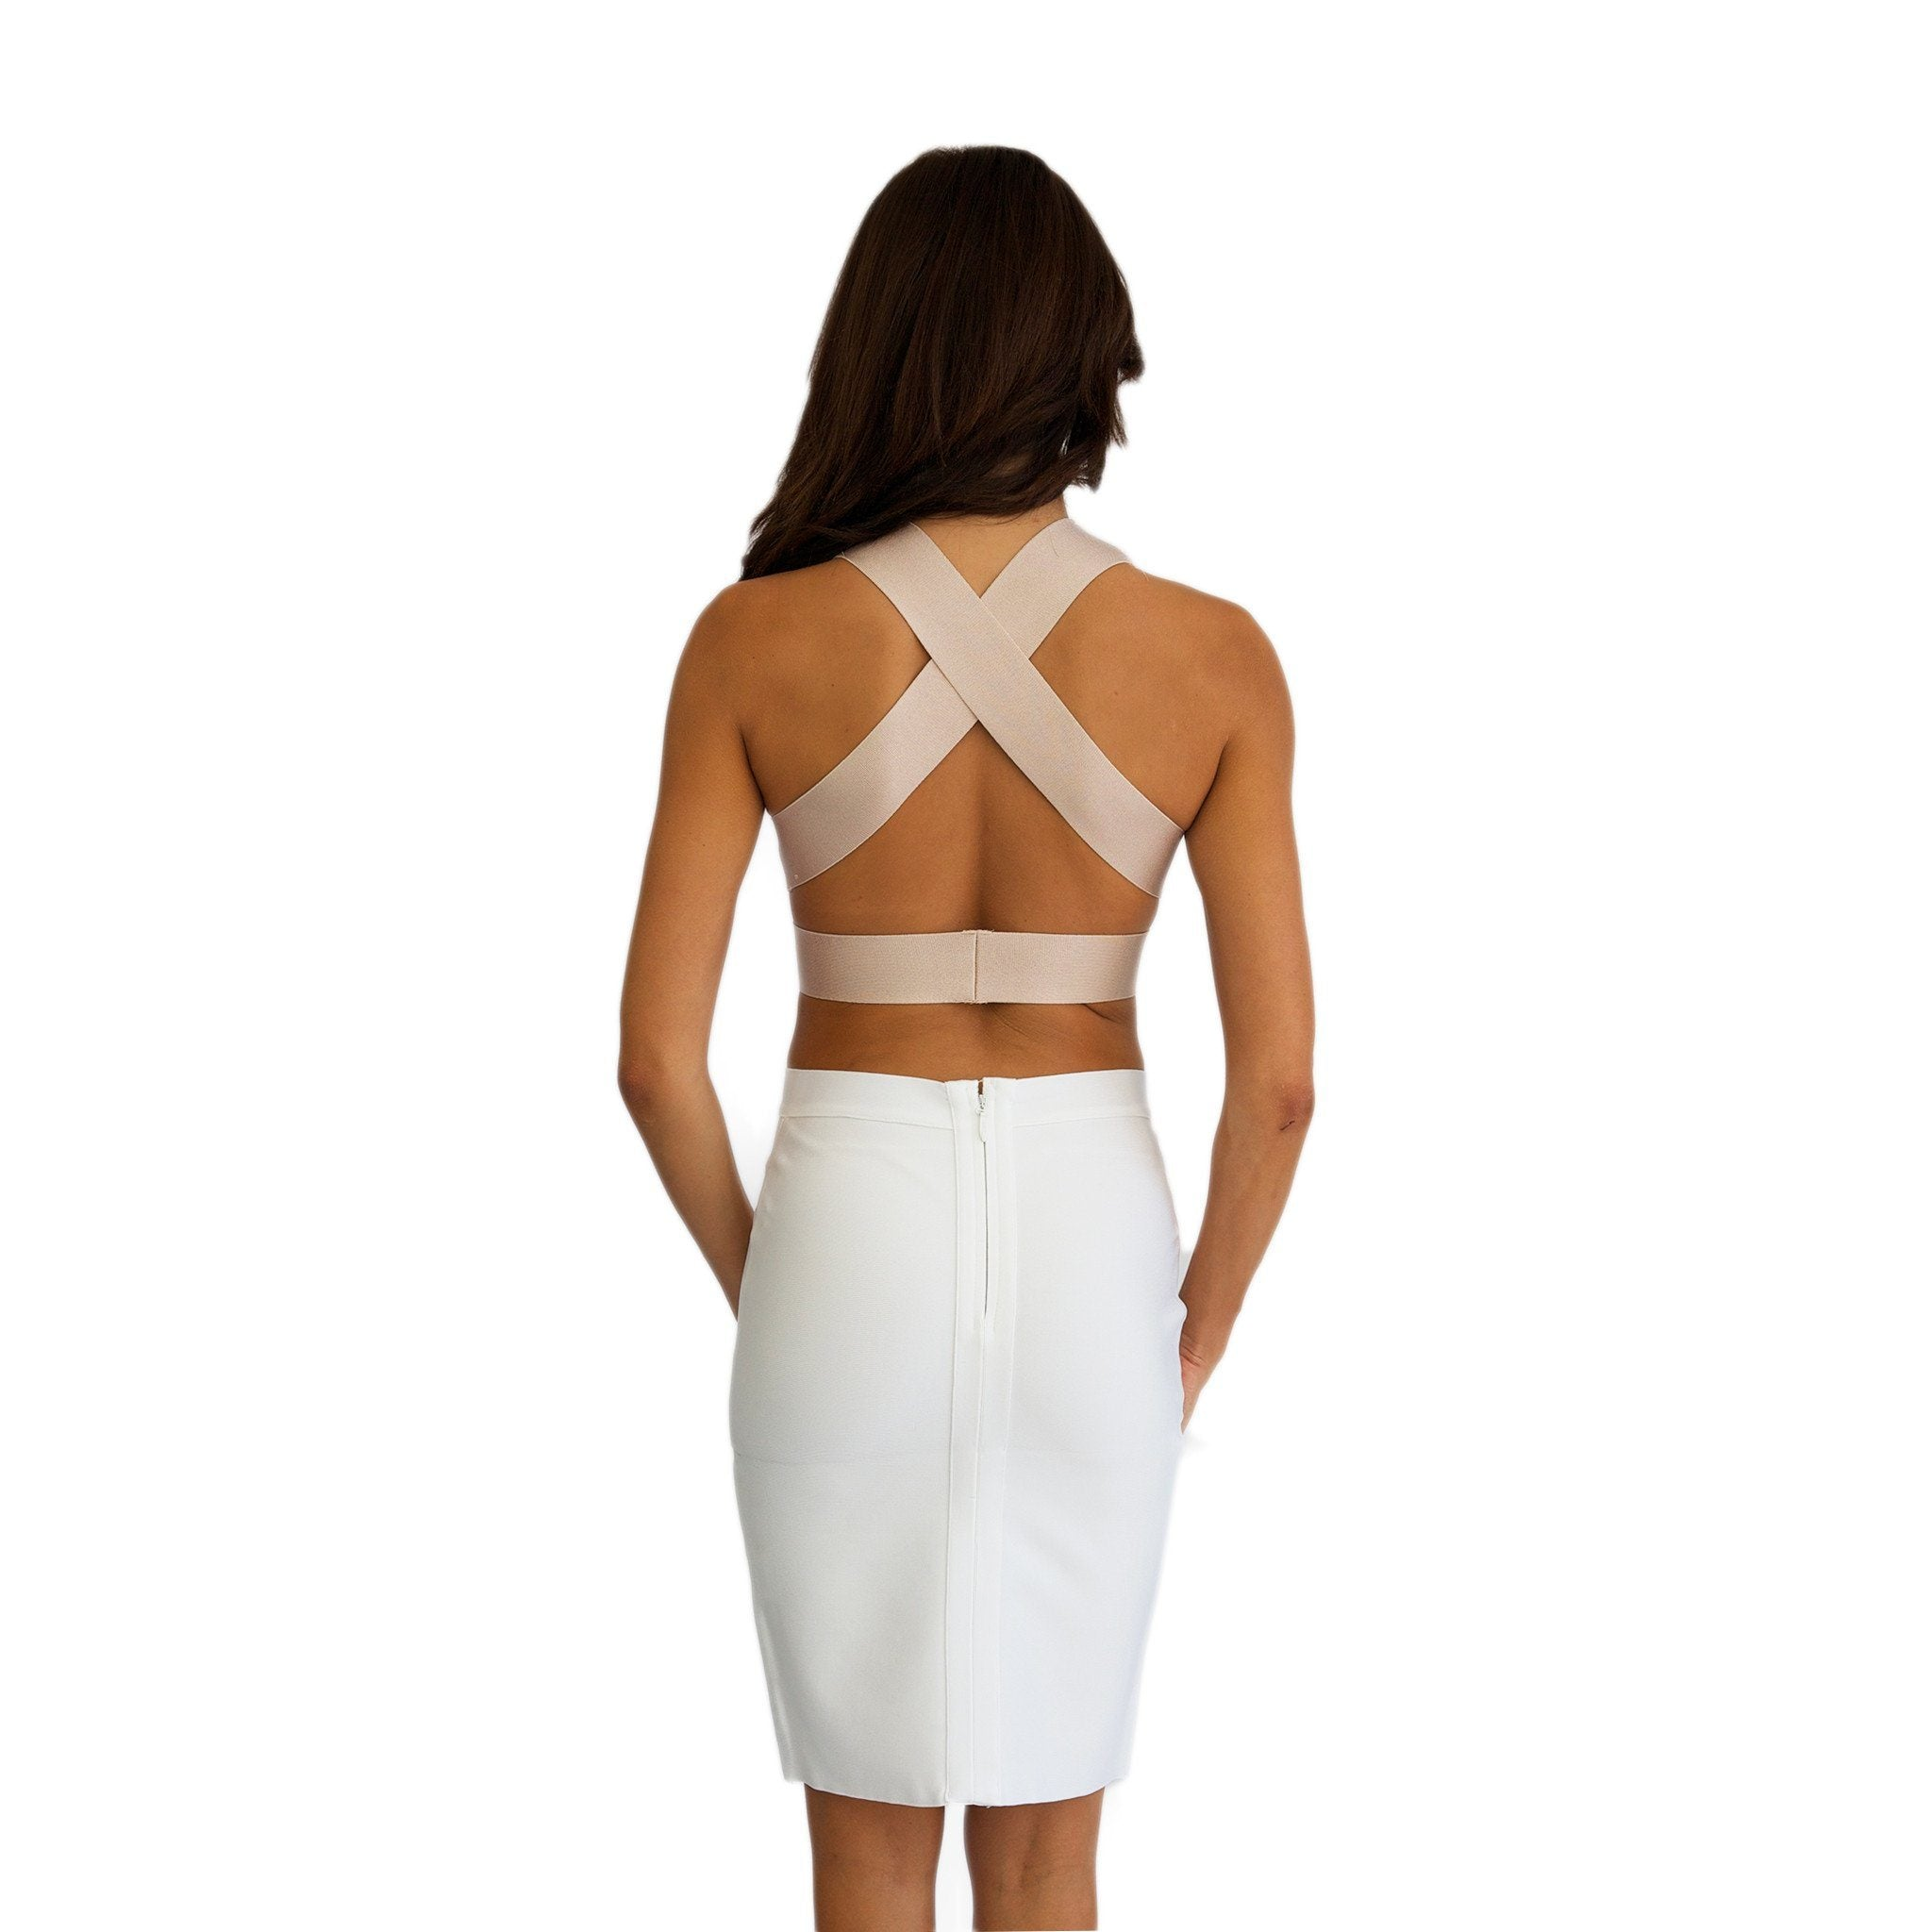 8d03406cb52370 ... Back of Kylie Jenner inspired outfit featuring stretchy thick quality  two-piece bandage dress set ...